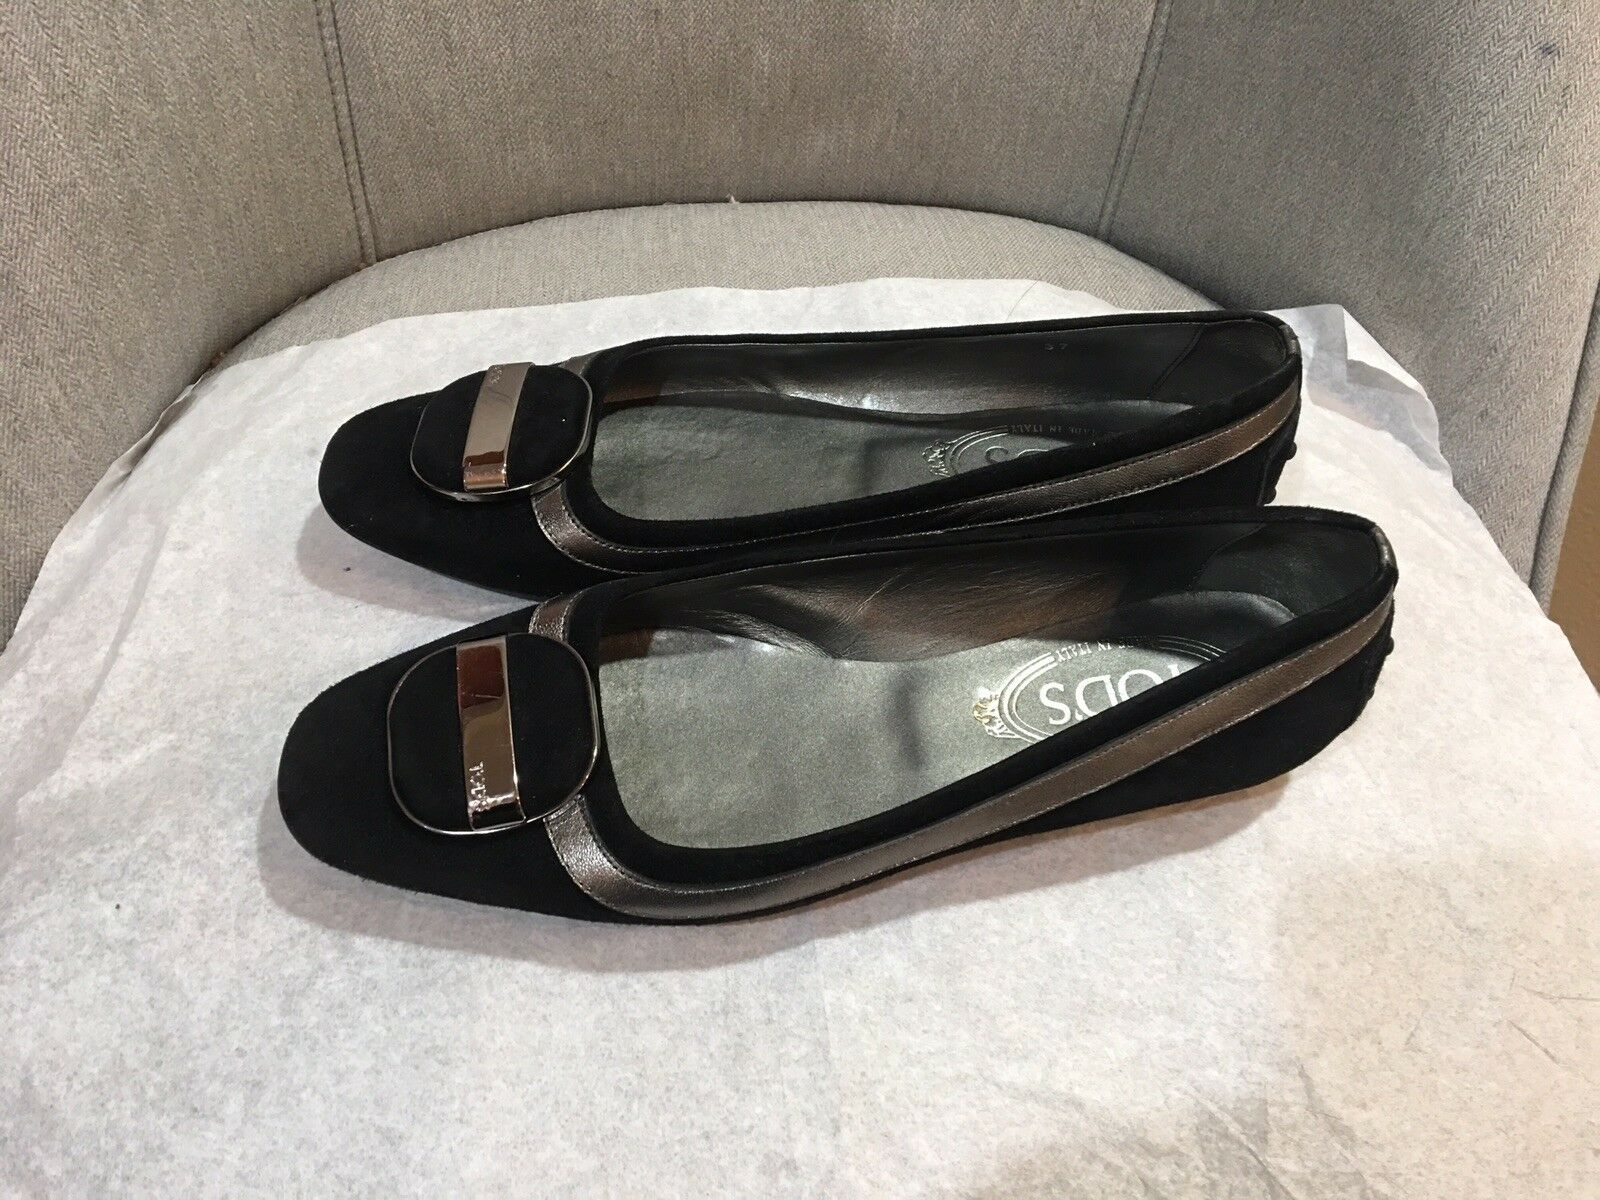 Tods Black Suede Silver Leather Trim Slip On shoes Low Heel shoes 37 M